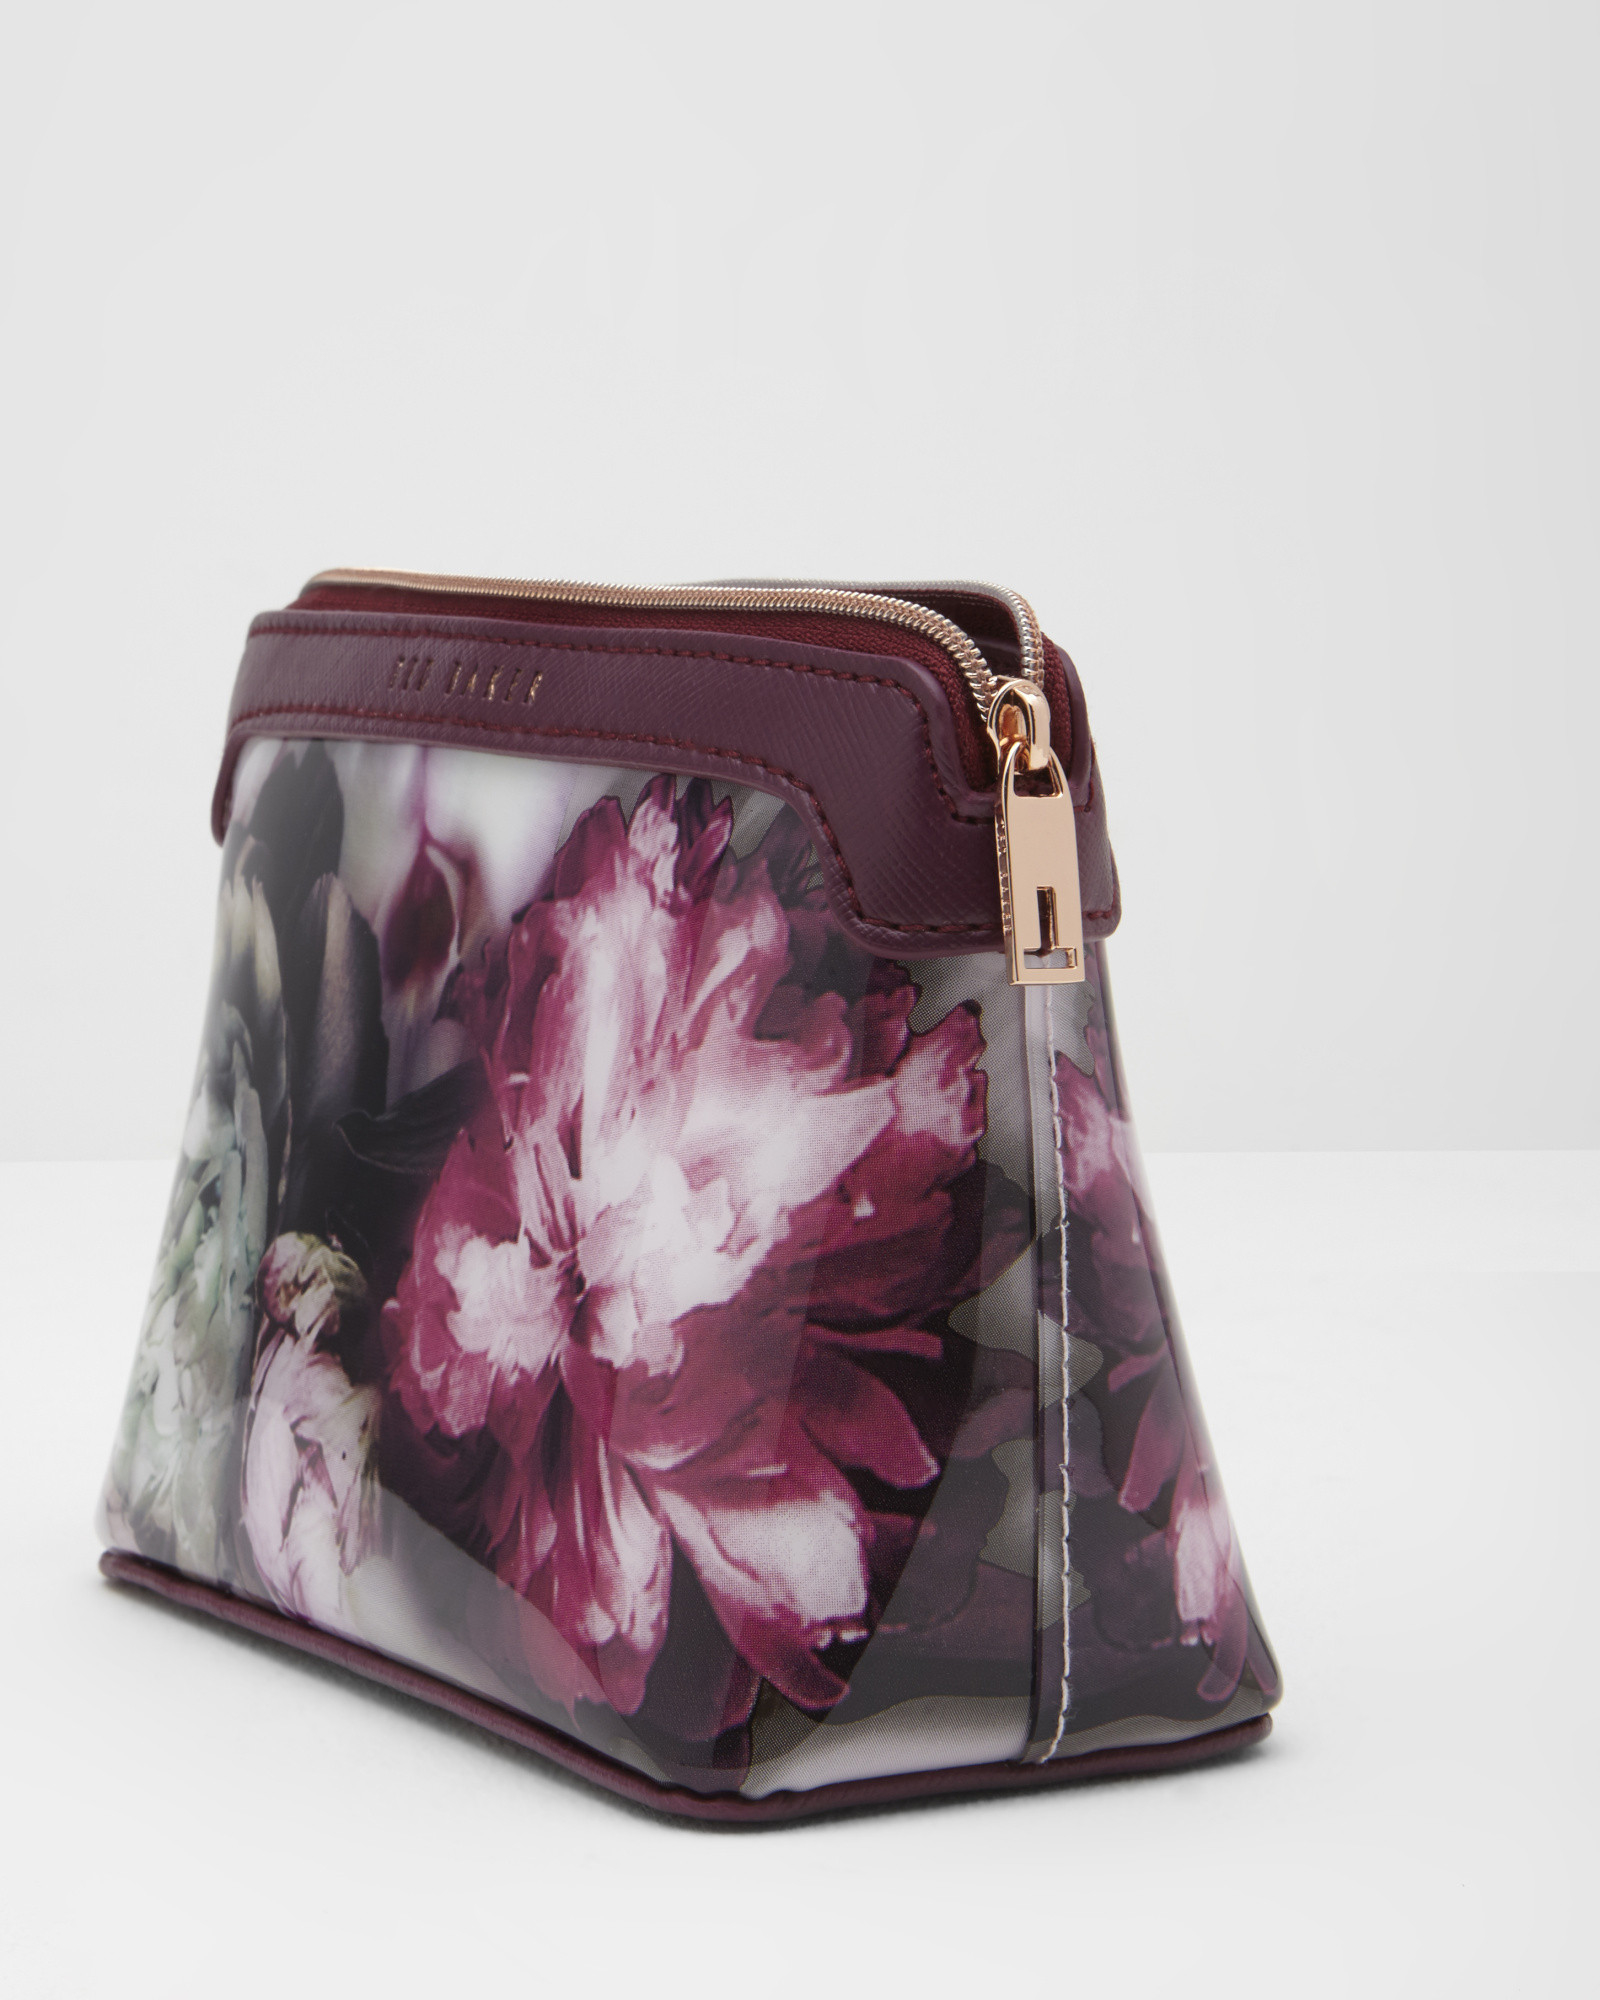 69aaace126a0f2 Lyst - Ted Baker Ethereal Posie Makeup Bag in Purple